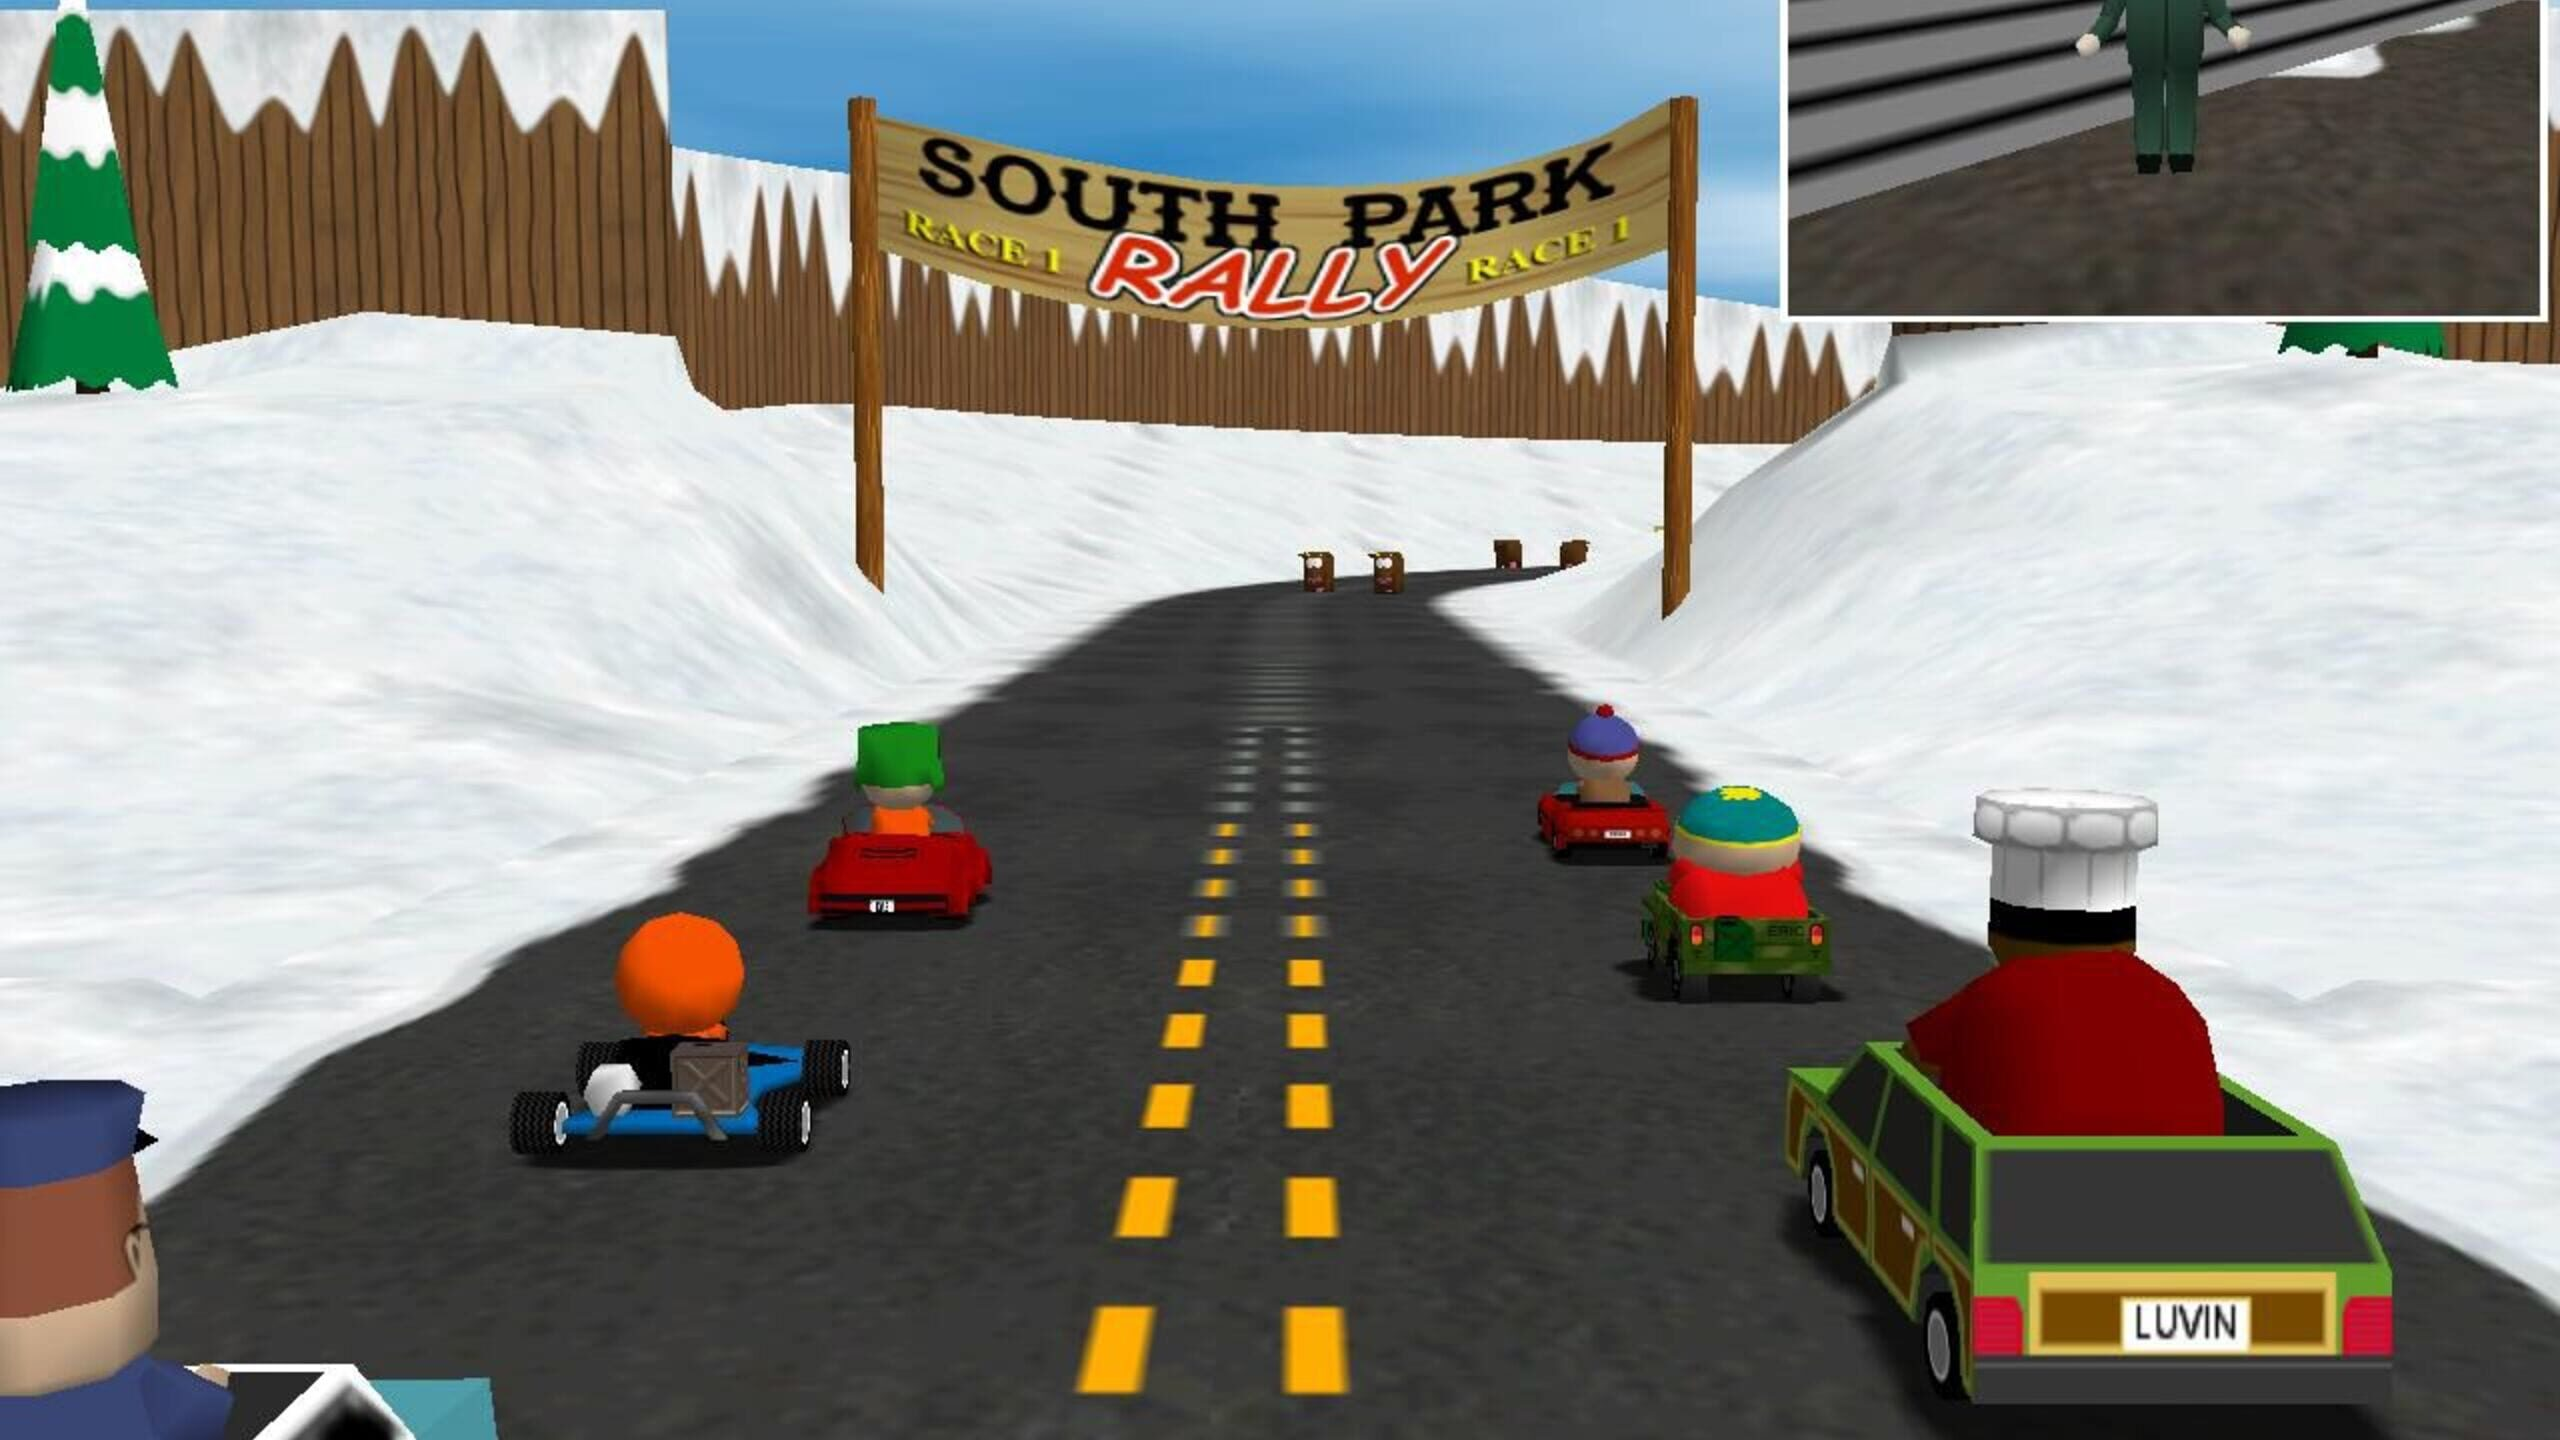 South Park Rally - screenshots-1